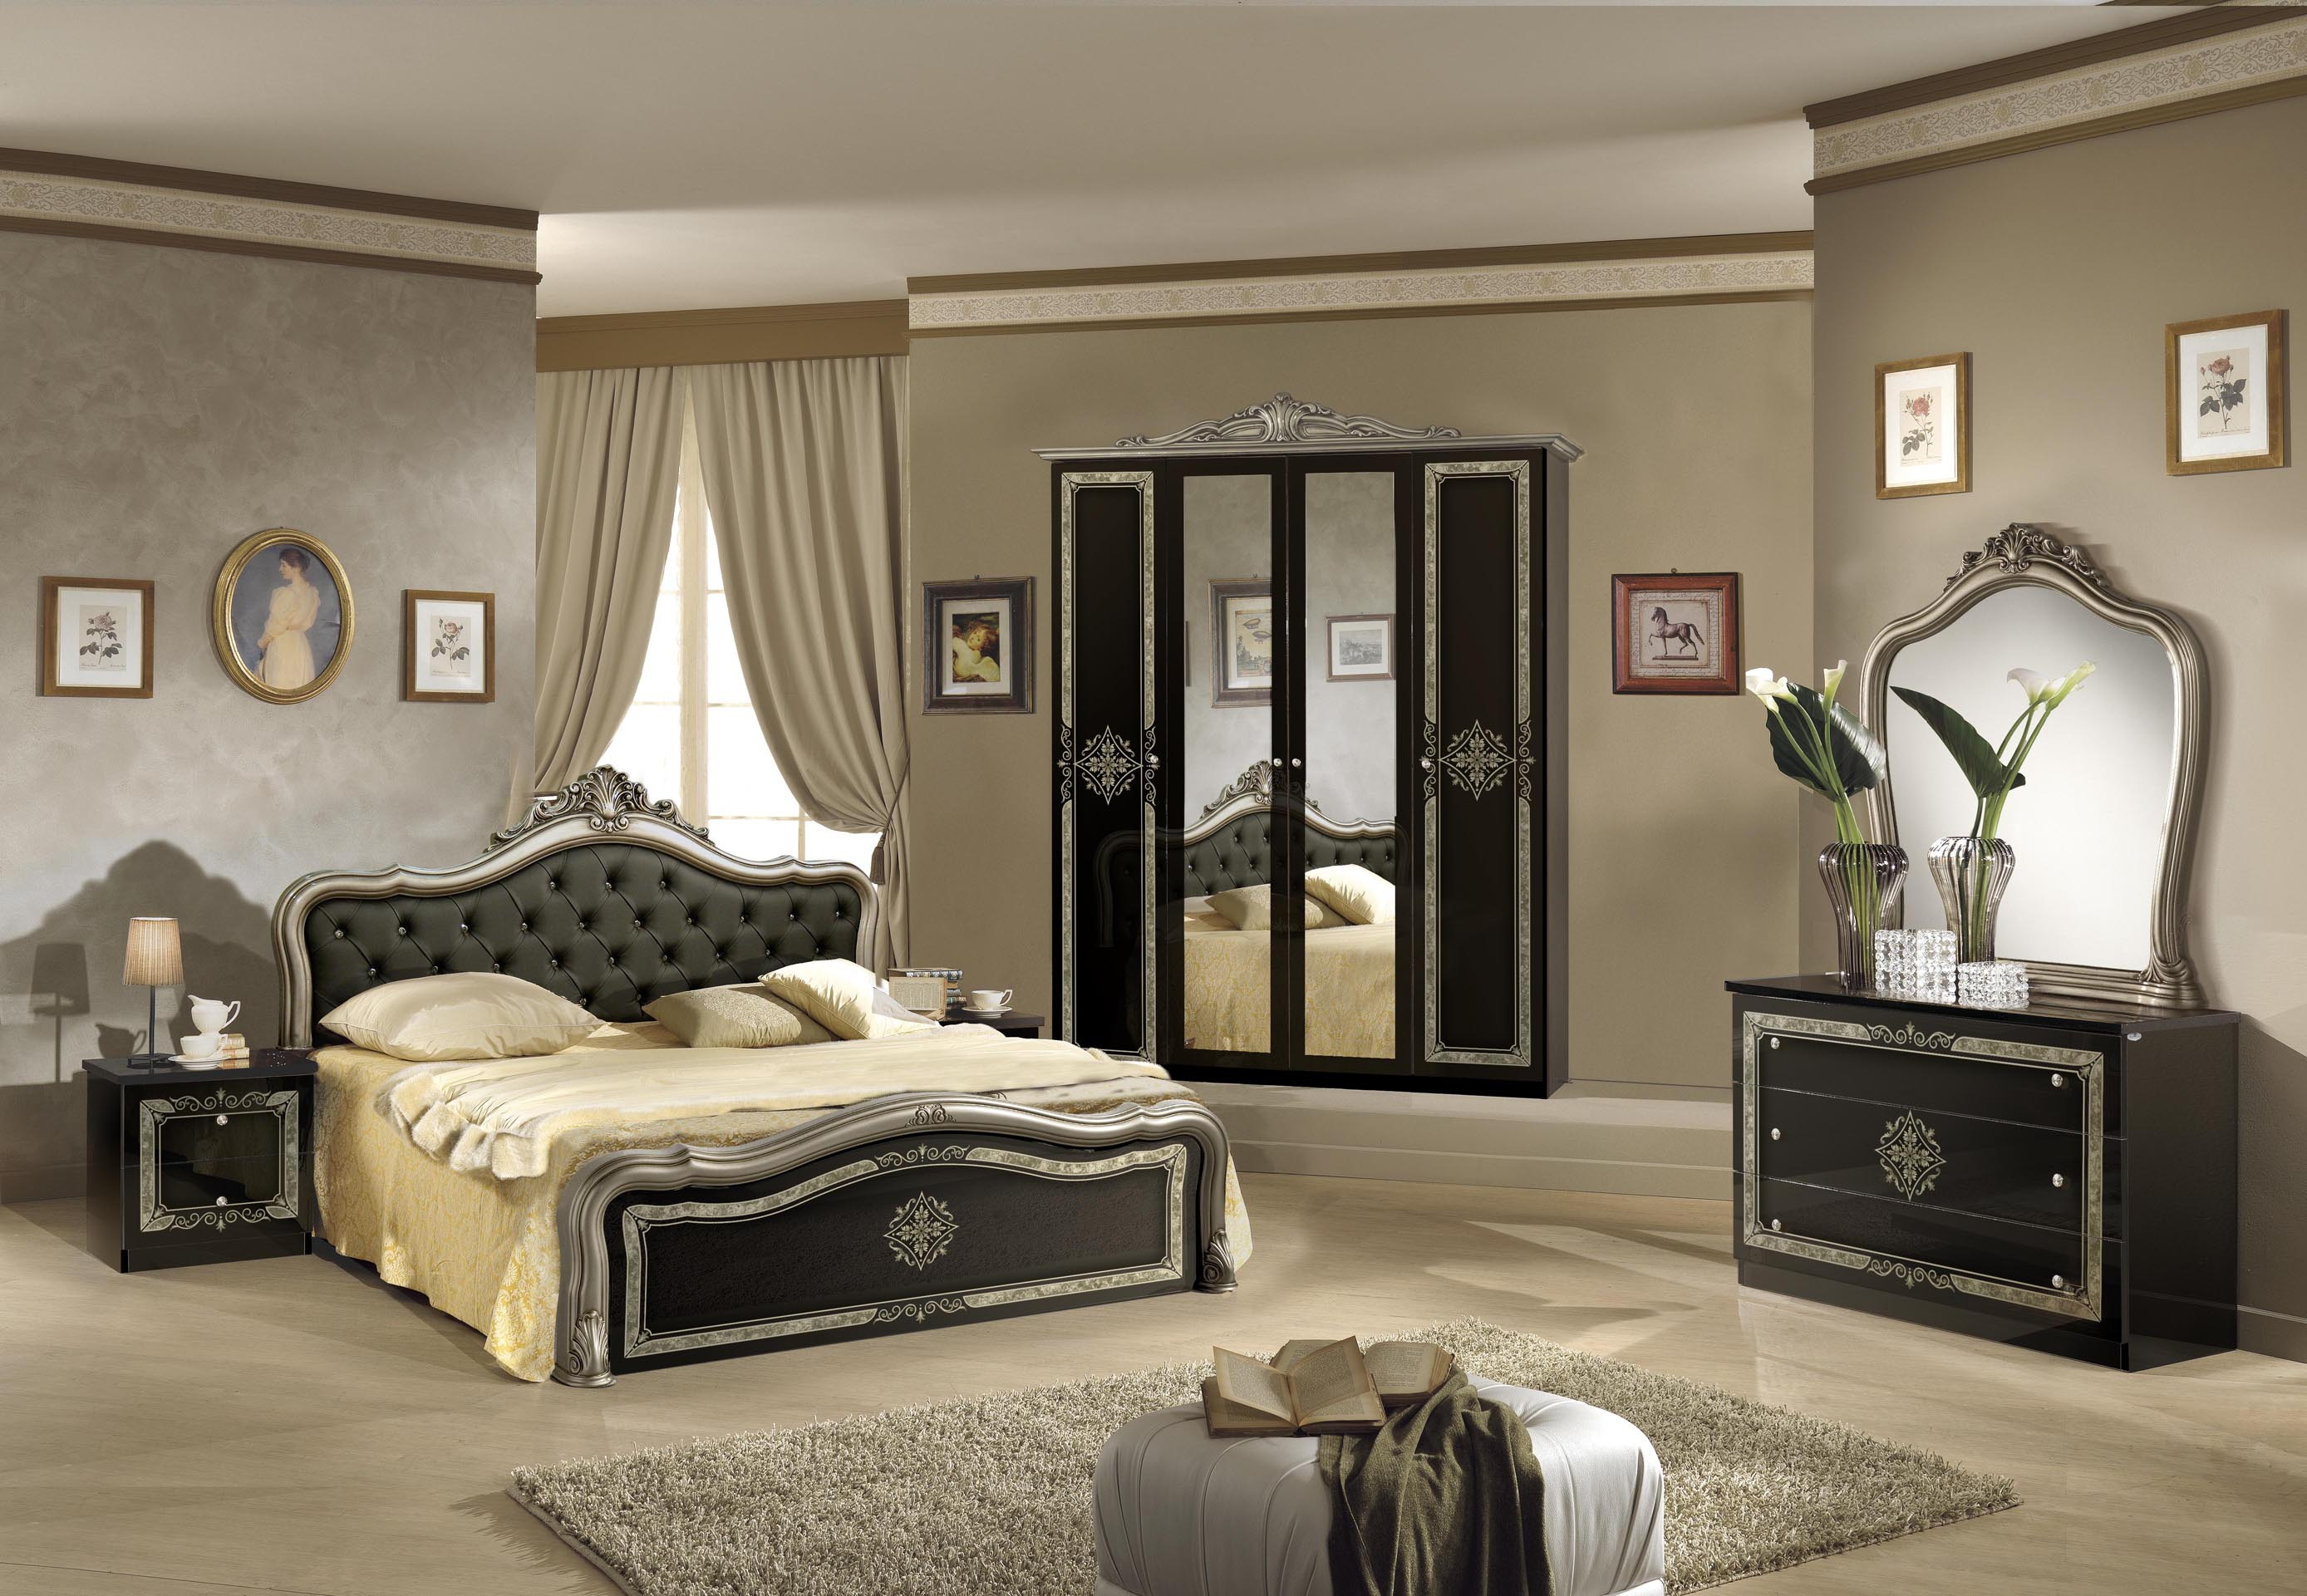 schlafzimmer lucy walnuss 180x200cm kleiderschrank 4trg italien dh lu nec rn tap 180. Black Bedroom Furniture Sets. Home Design Ideas